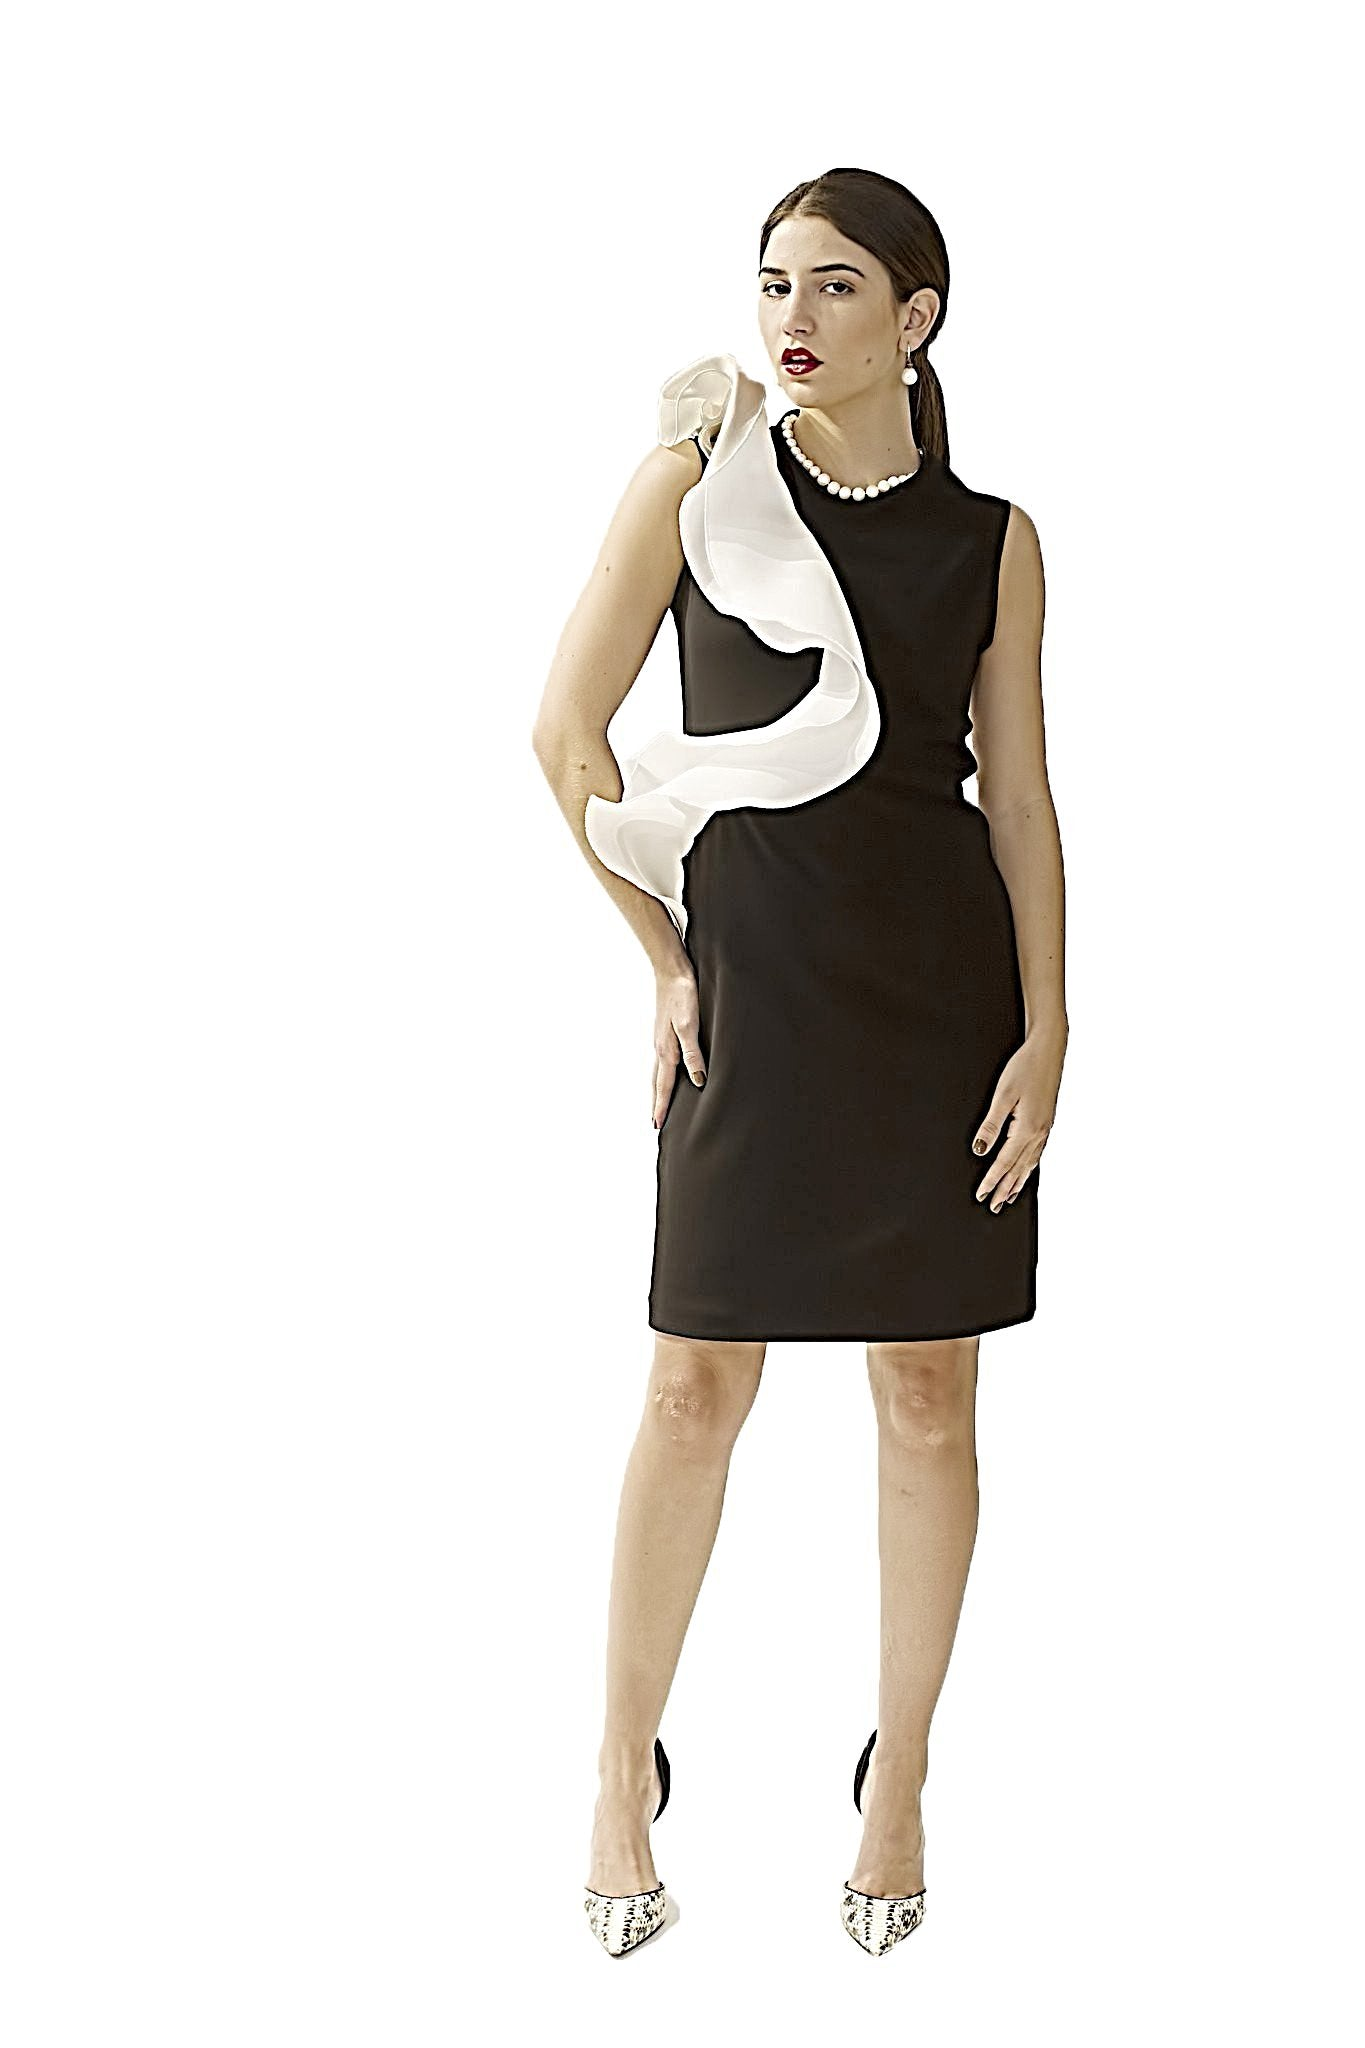 BLACK AND WHITE DAVID MAISON DM-4896D-B/W  COCKTAIL RUFLE DRESSBLACK AND WHITE DAVID MAISON DM-4896D-B/W  COCKTAIL RUFLE DRESS, THE BLACK AND WHITE DRESS COLLECTION 2017, DAVID MAISON, DAVID MAISON  - DAVID MAISON